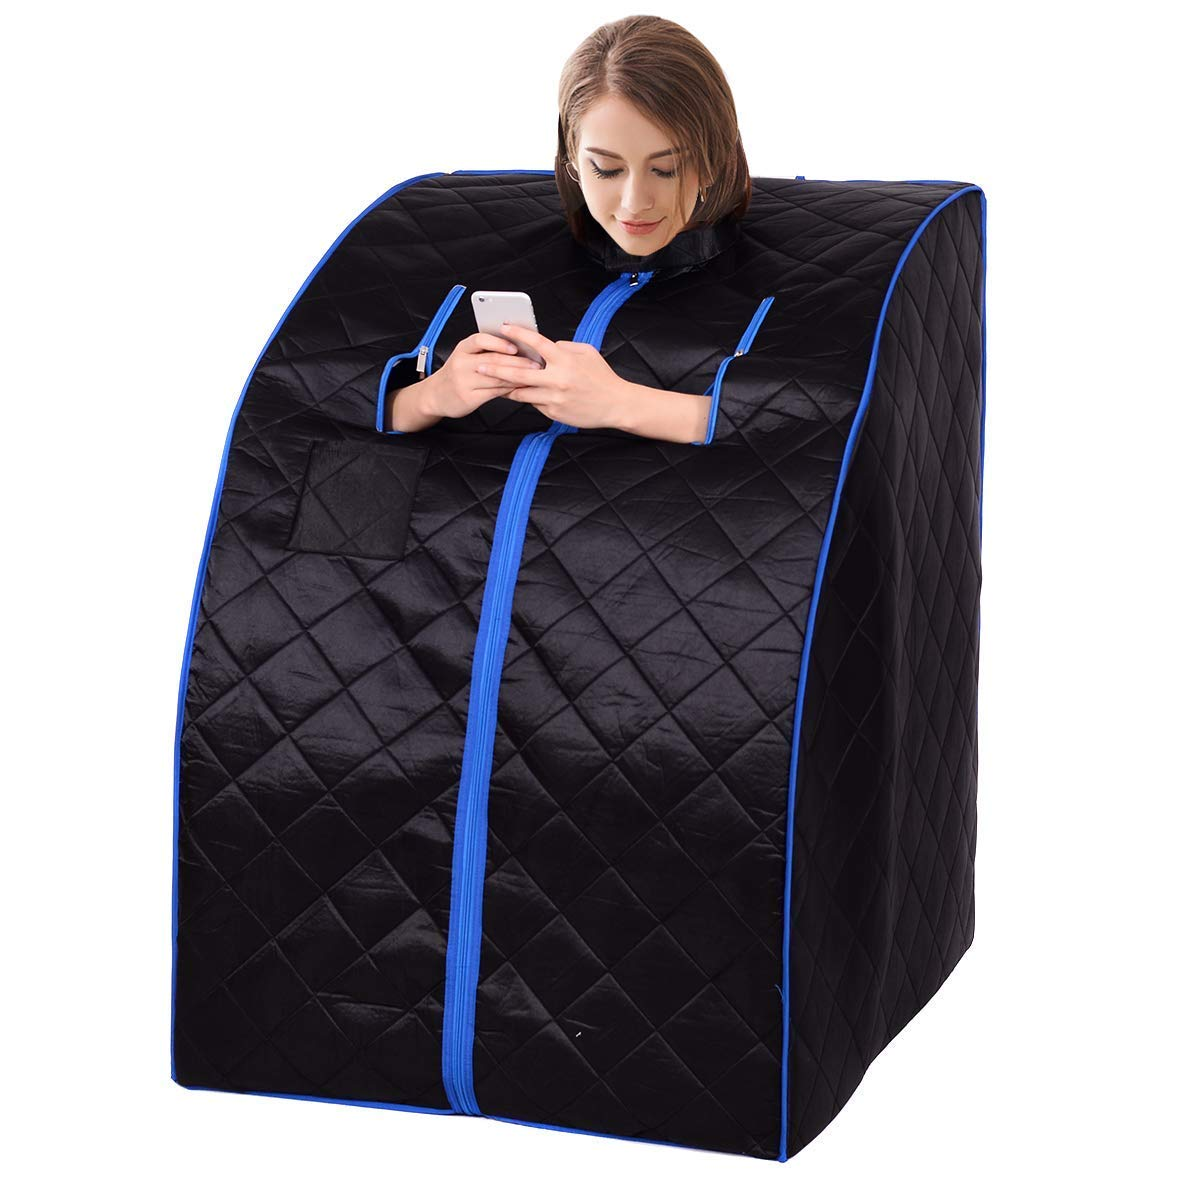 For Sauna Portable Far Infrared Spa Sauna Weight Loss Negative Ion Detox Therapy Personal Fir Infrared Sauna Room Folding Chair Beautiful And Charming Sauna Rooms